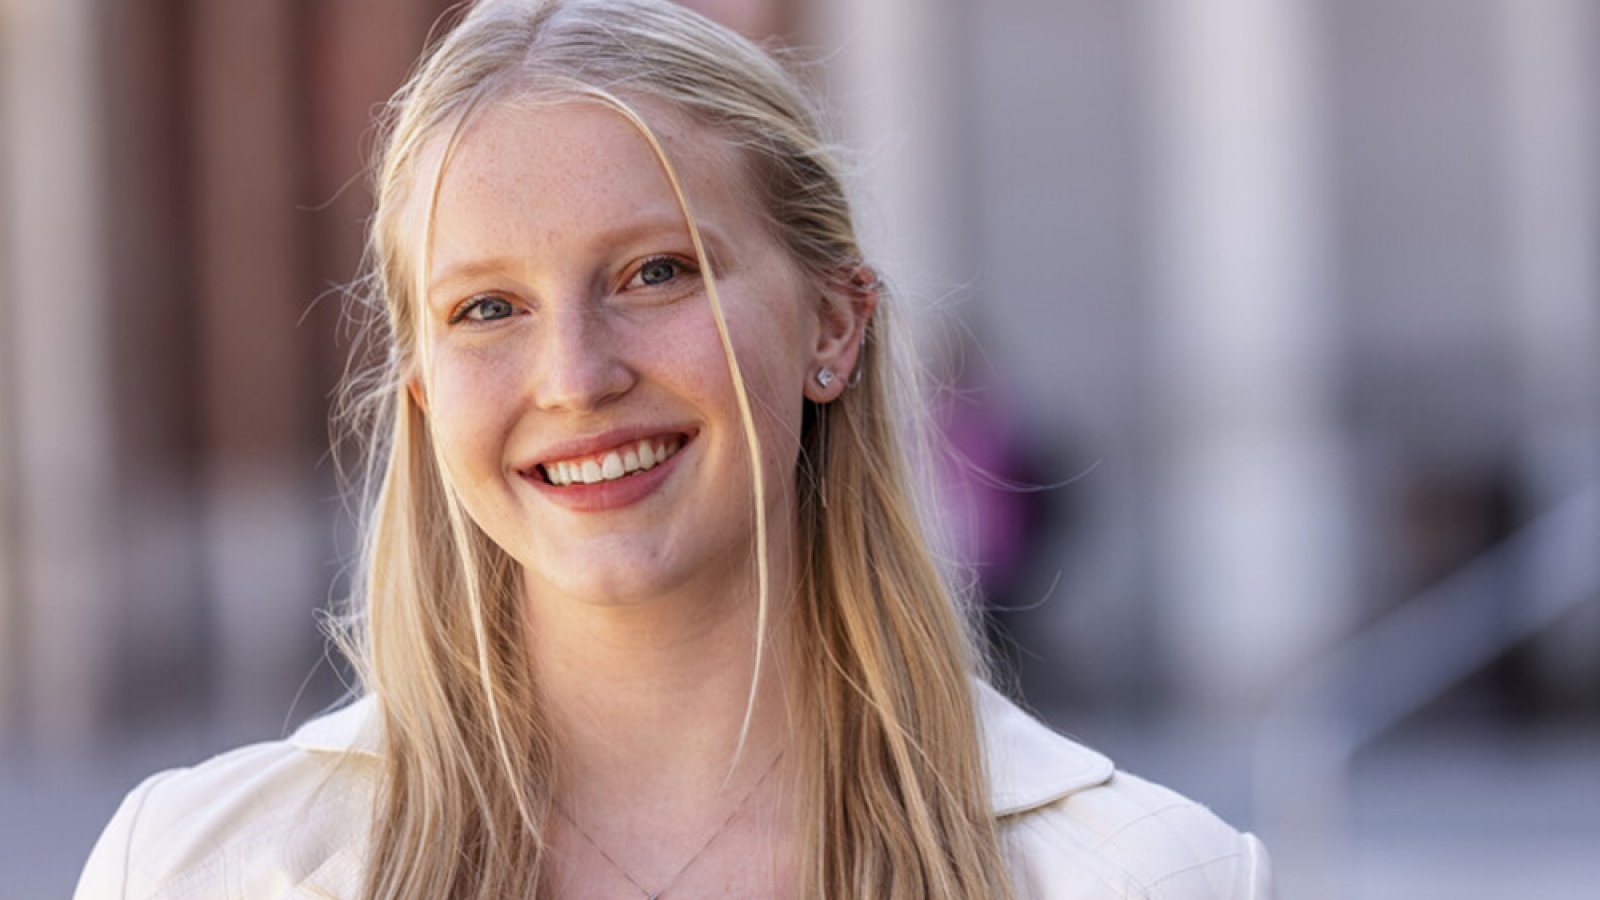 Inspired by her mother and other women in STEM fields, first-year Husker Nicole Livingston is pursuing studies in software engineering. (Craig Chandler / University Communication)